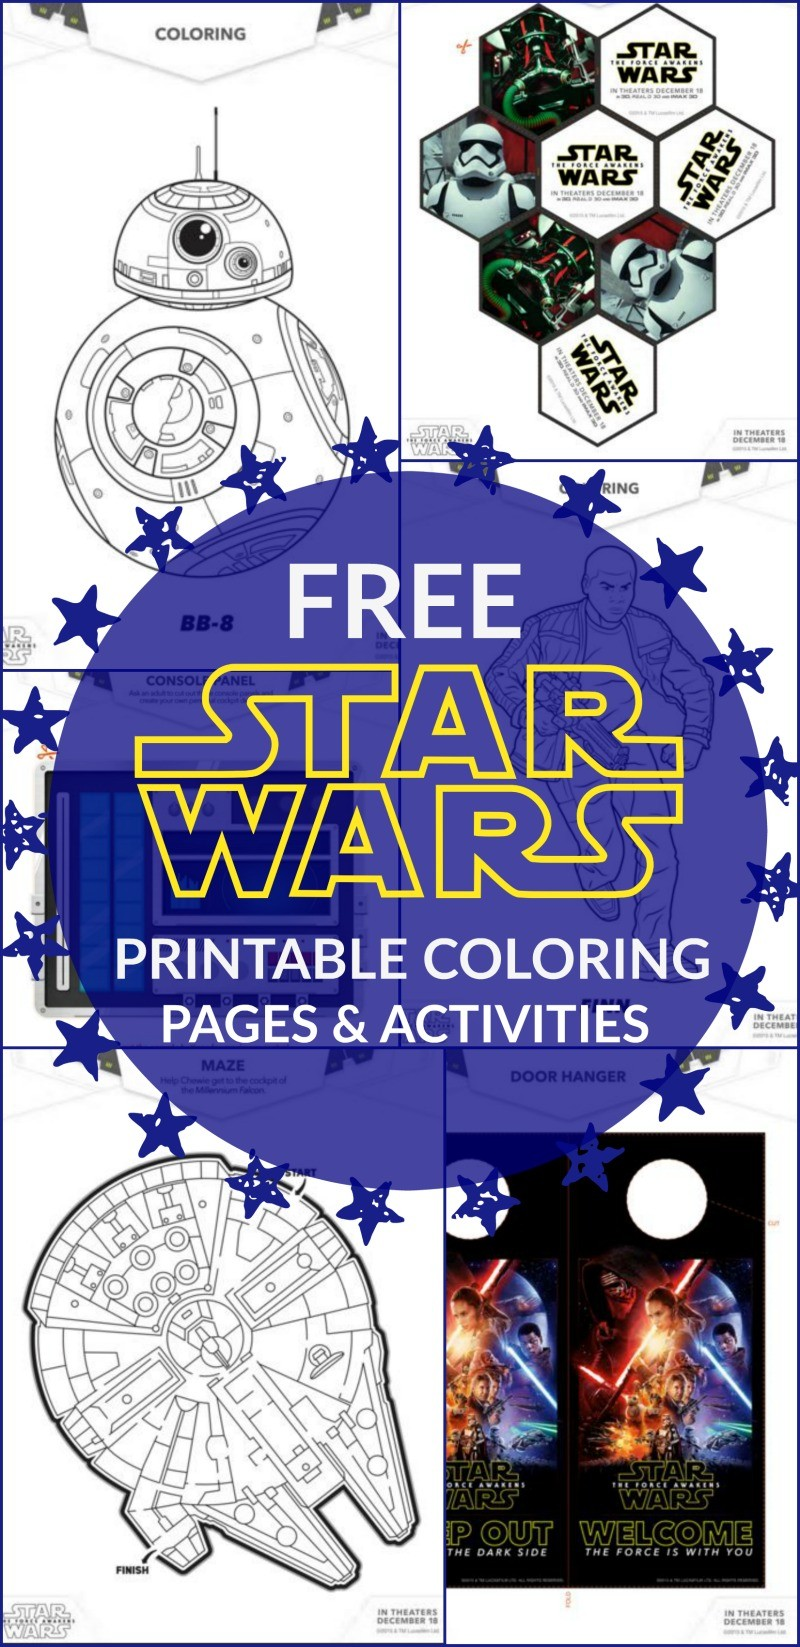 Peaceful image with regard to star wars printable crafts